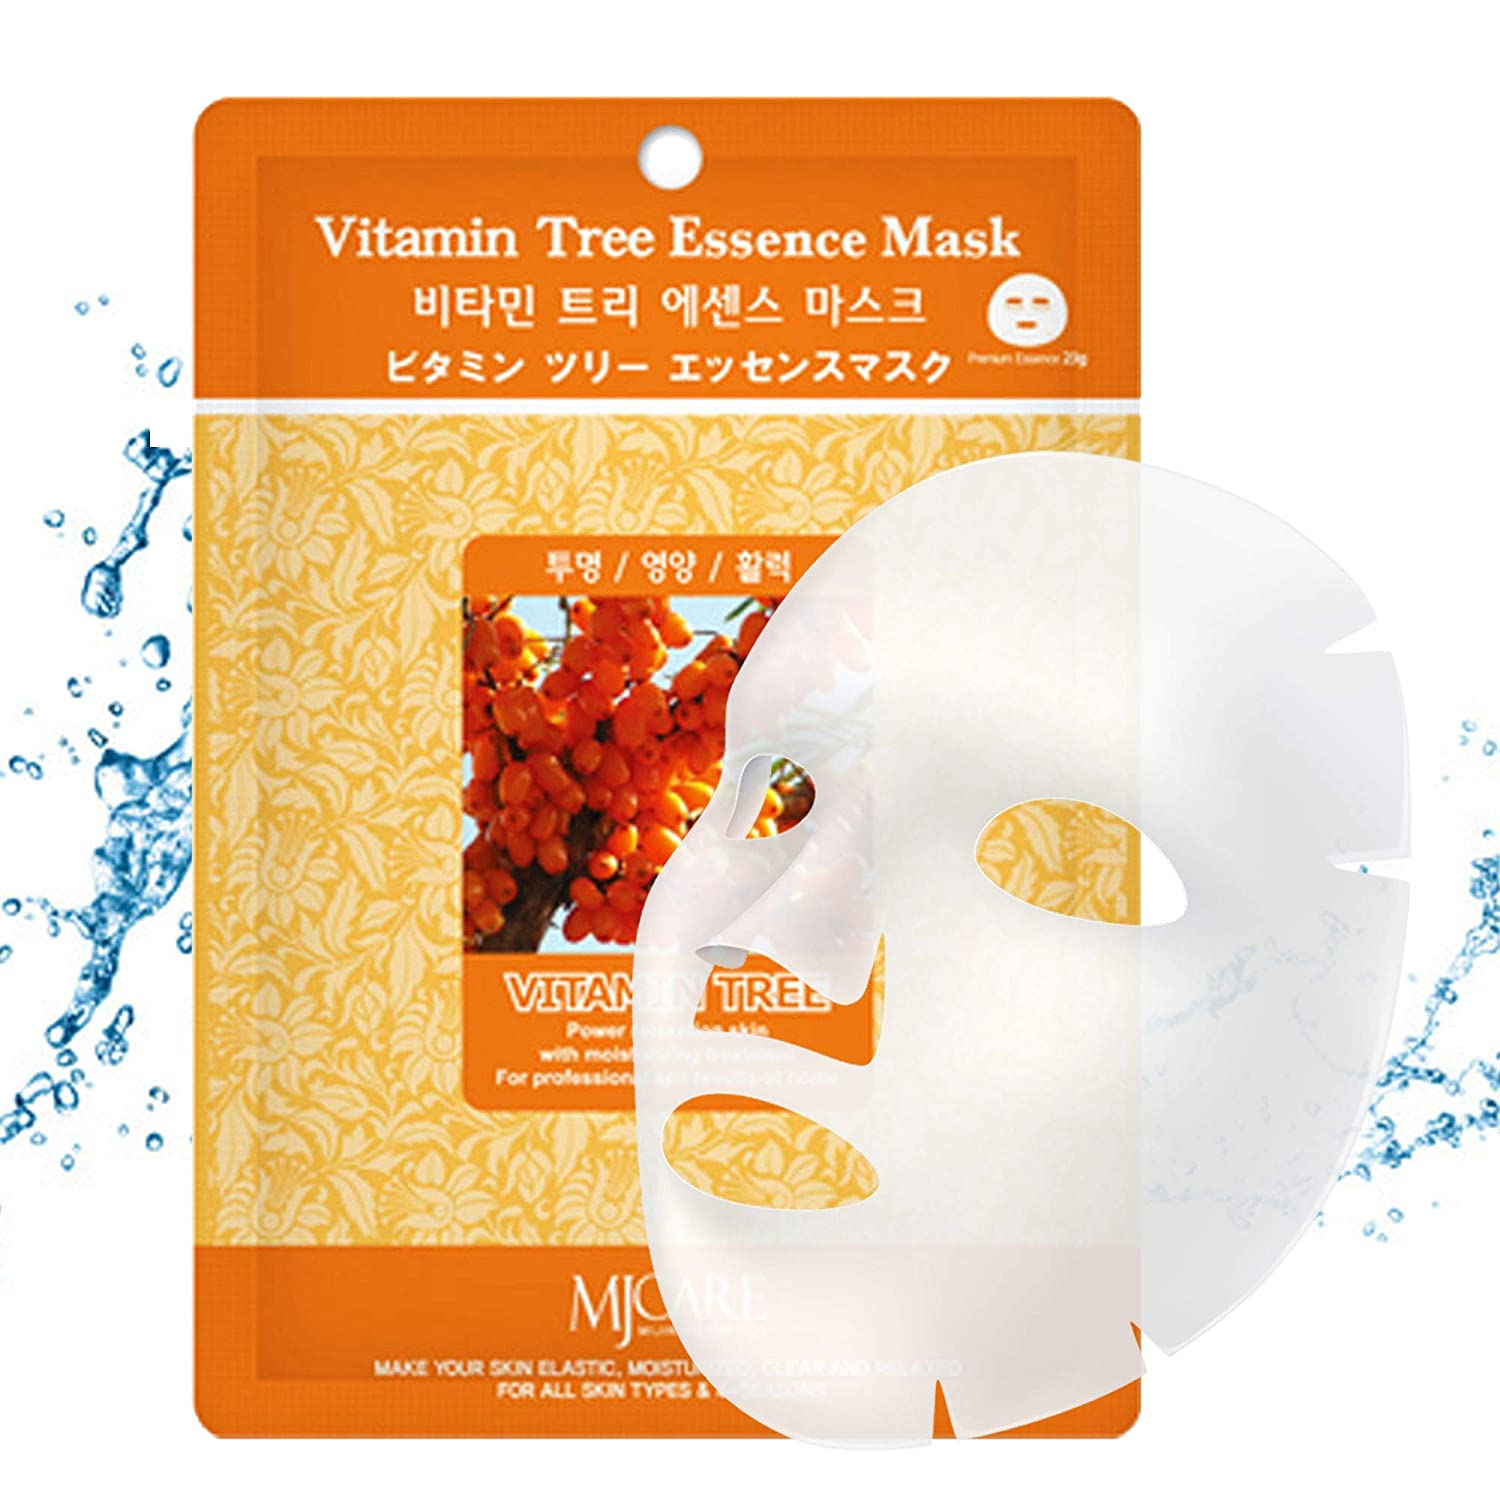 The Elixir Beauty MJ Korean Cosmetic Vitamin Tree Premium Essence Mask Pack Sheet (23g, 10 Packs)